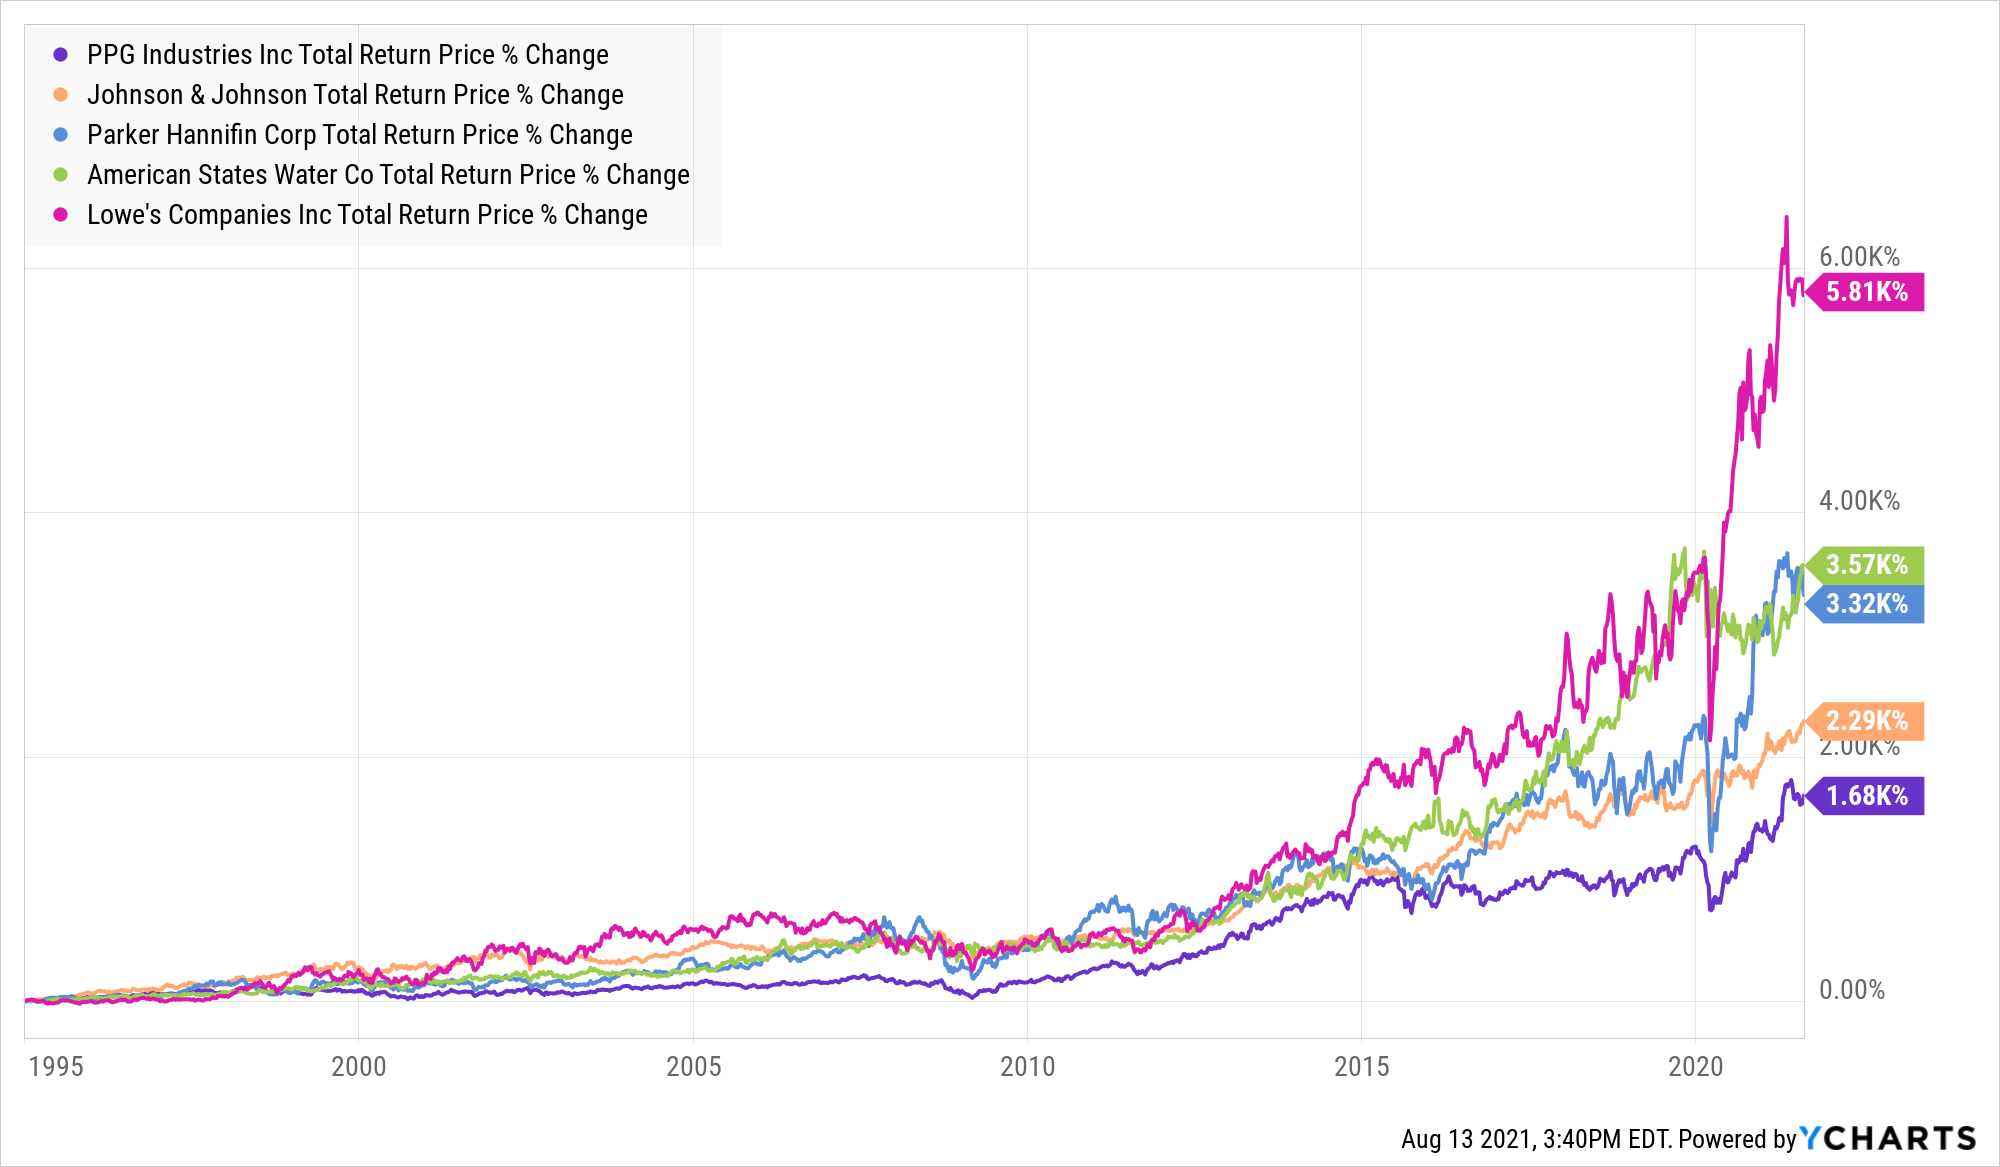 PPG Total Return Price Chart